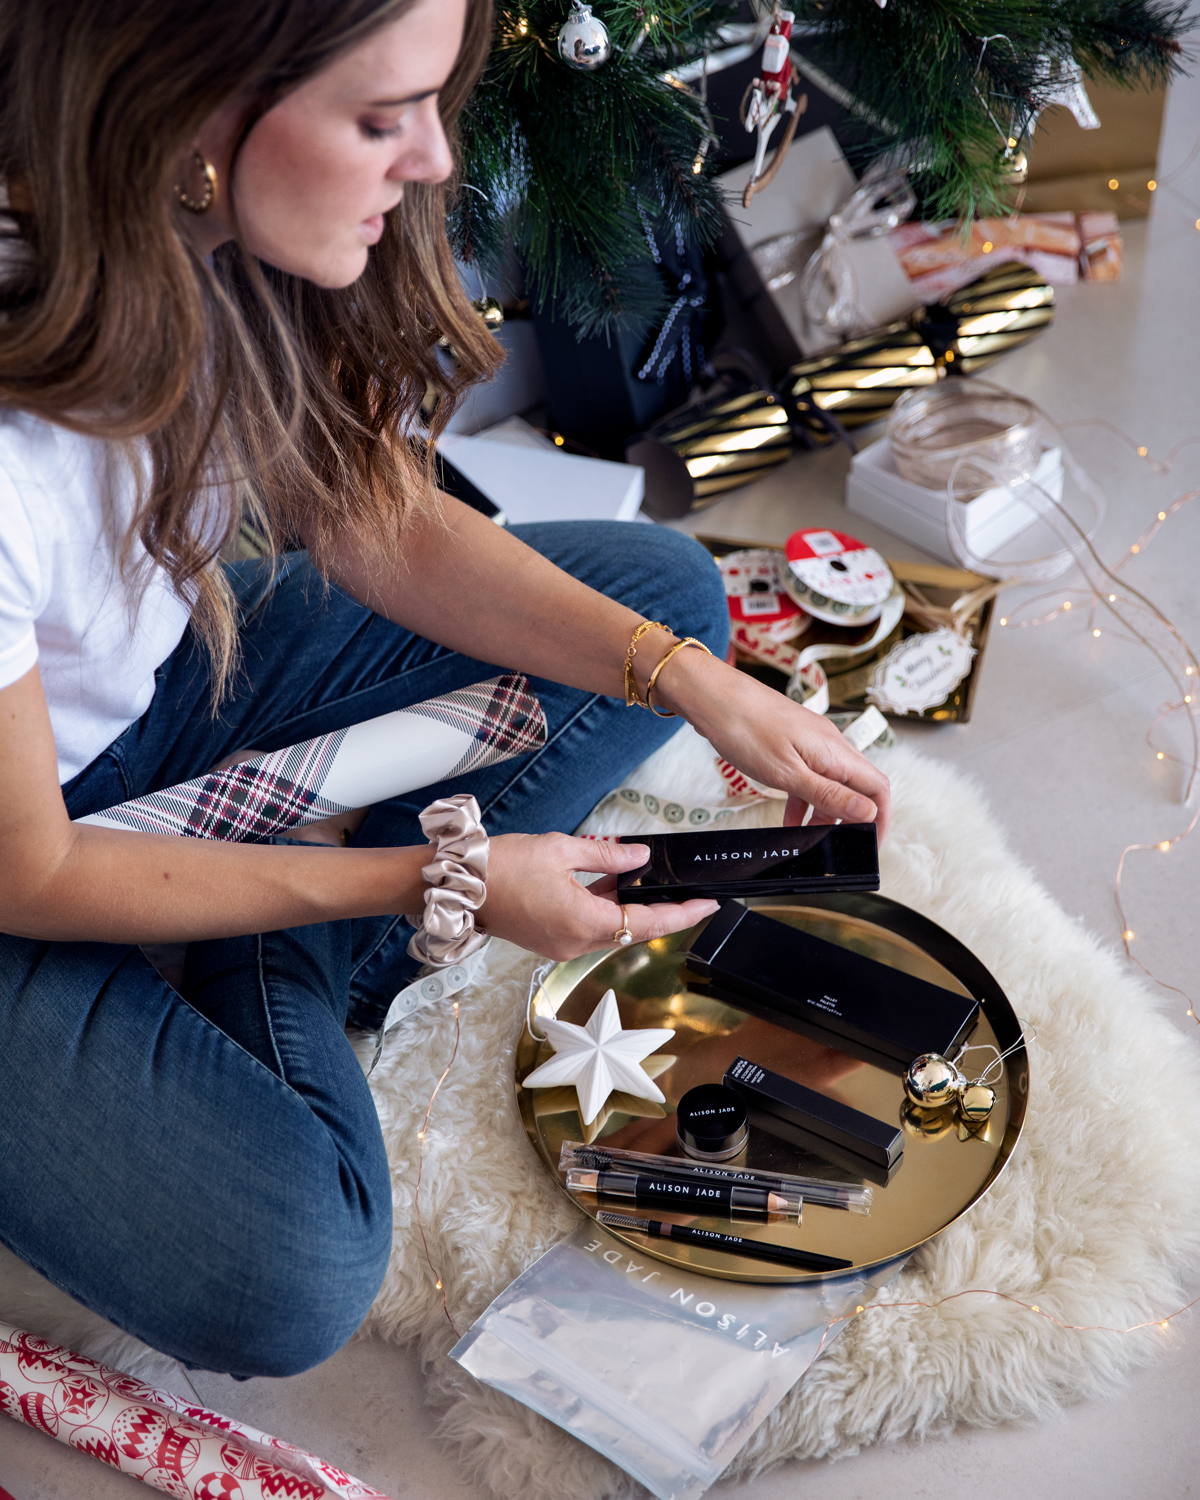 2018 Christmas gift guide Inspiring Wit blog featuring Perth gift ideas Alison Jade Cosmetics gift packs